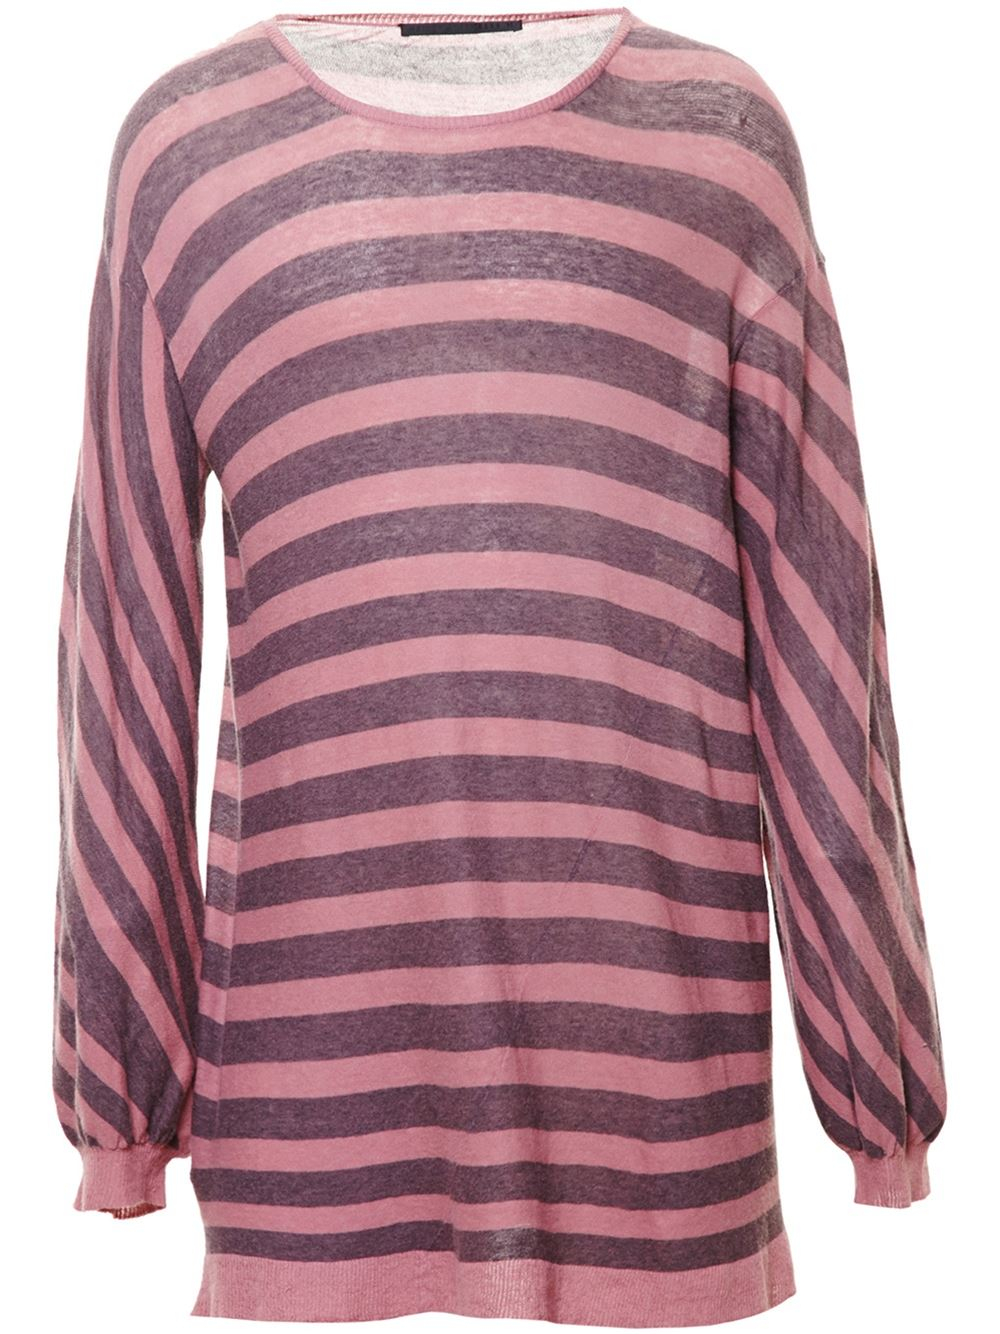 haider ackermann striped oversized jersey knit sweater in. Black Bedroom Furniture Sets. Home Design Ideas